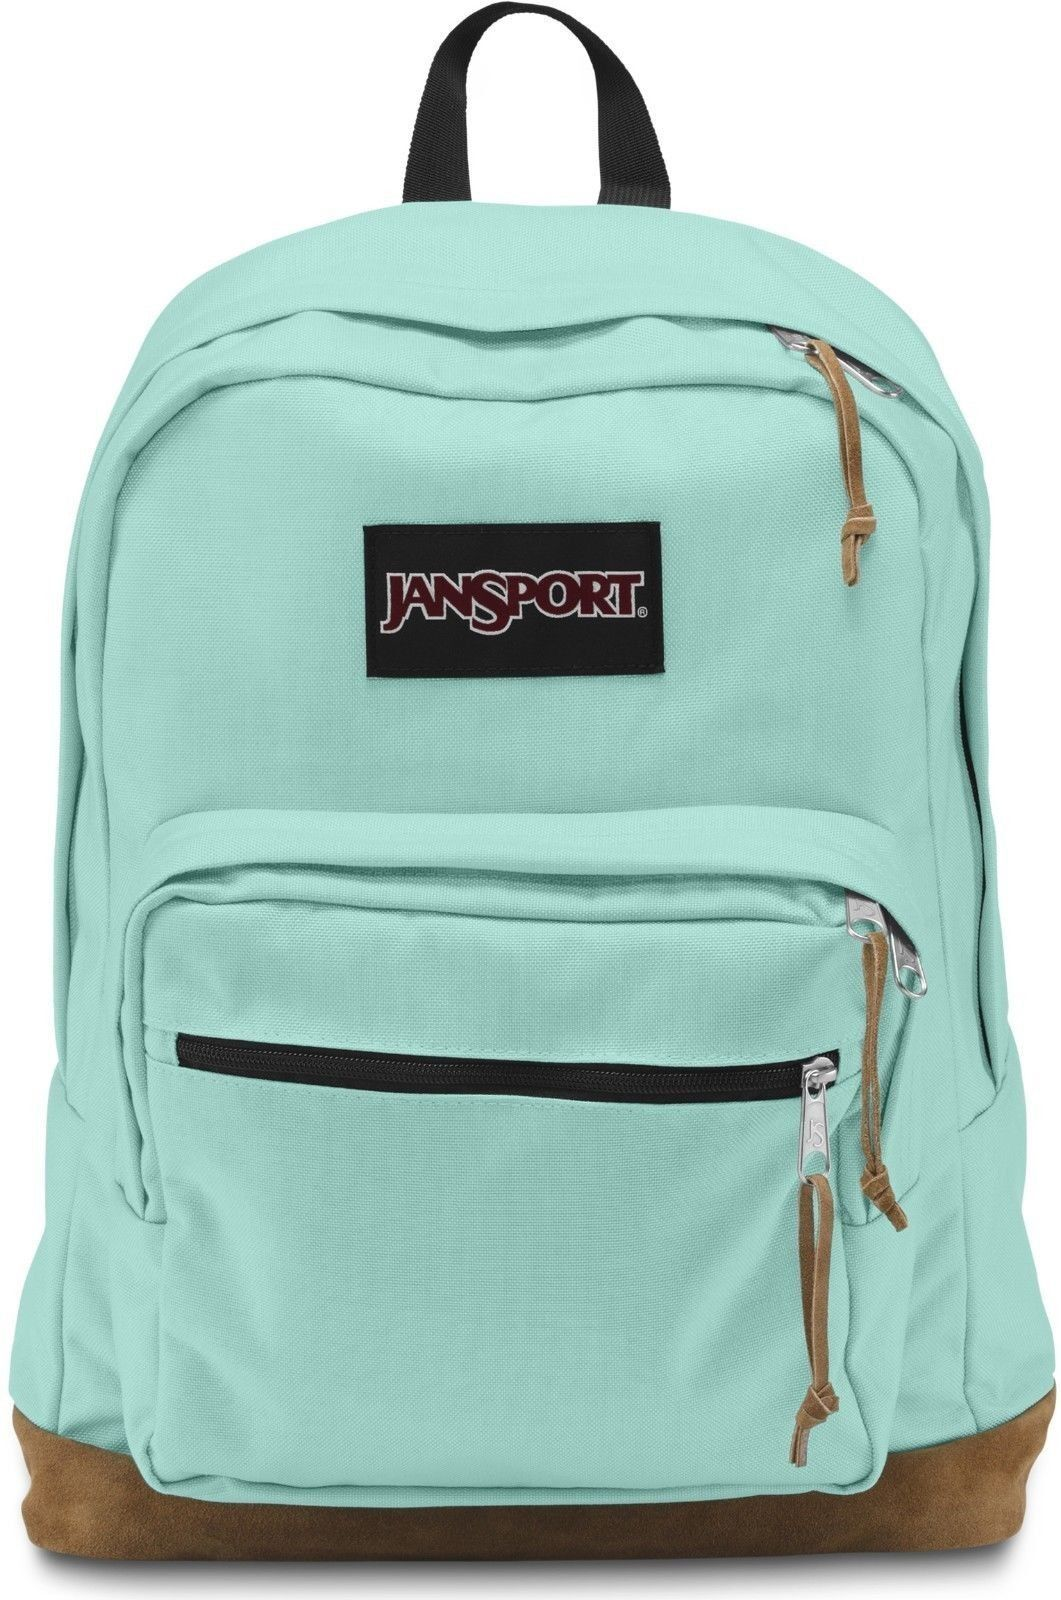 Top 10 Jansport Backpacks | eBay